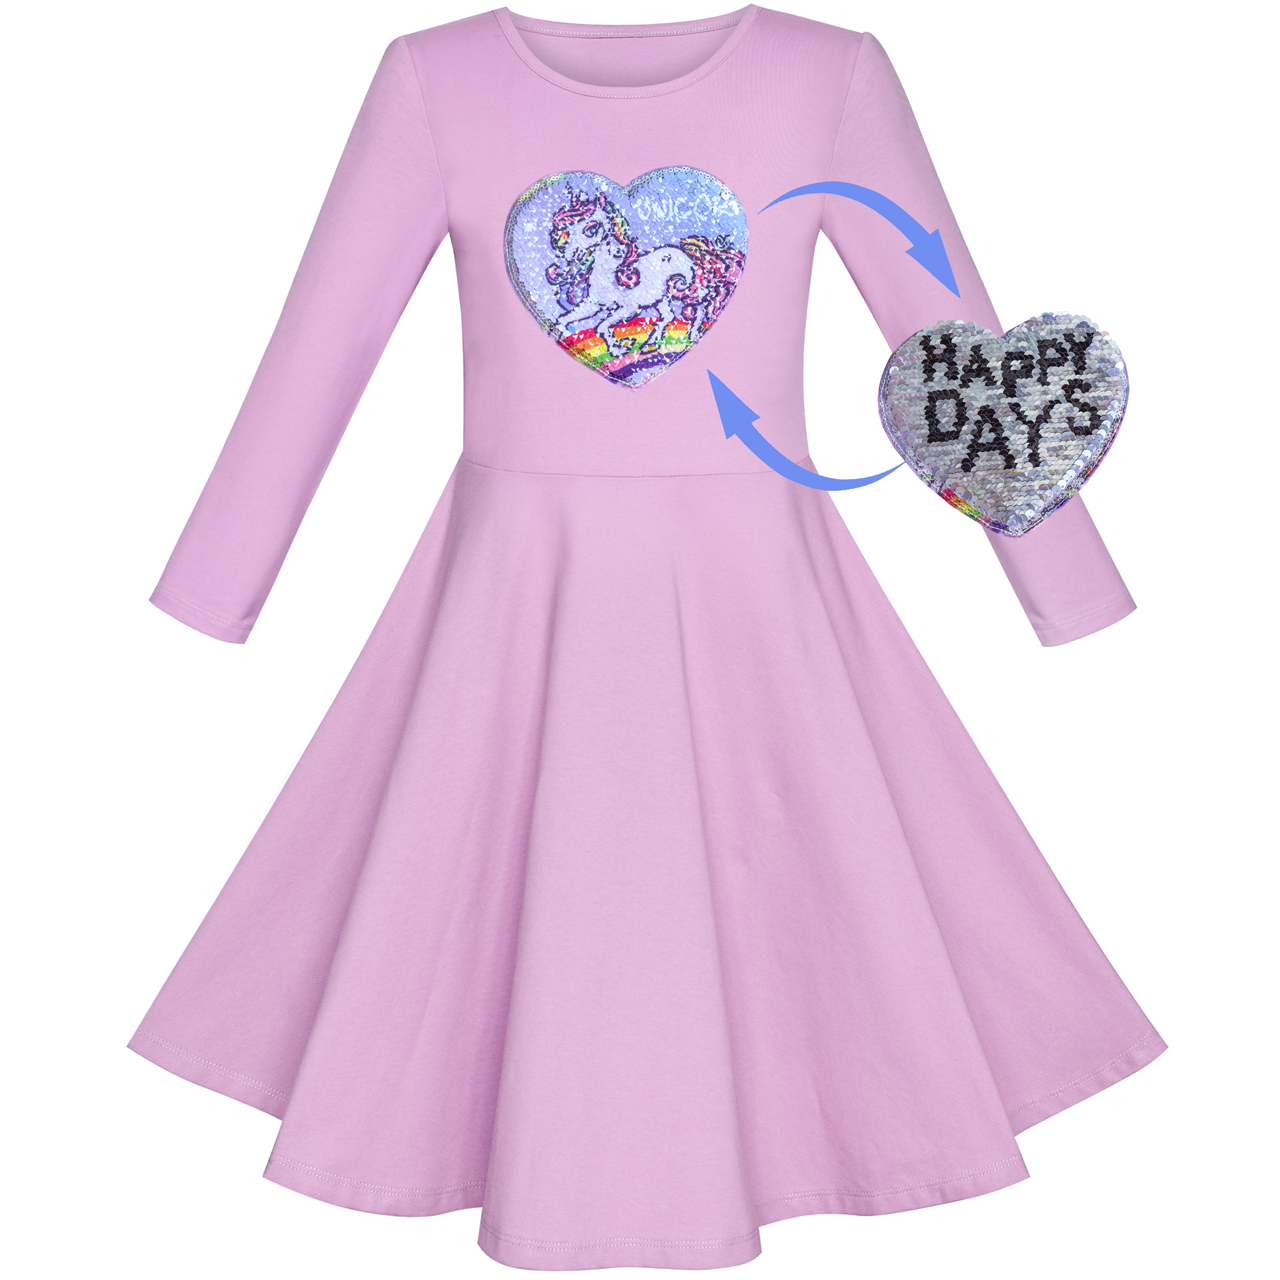 Girls Dress Cotton Purple Unicorn Sequin Short Sleeve Casual 2019 Summer  Princess Wedding Party Dresses Kids Clothes Pageant-in Dresses from Mother    Kids ... 892512984d65